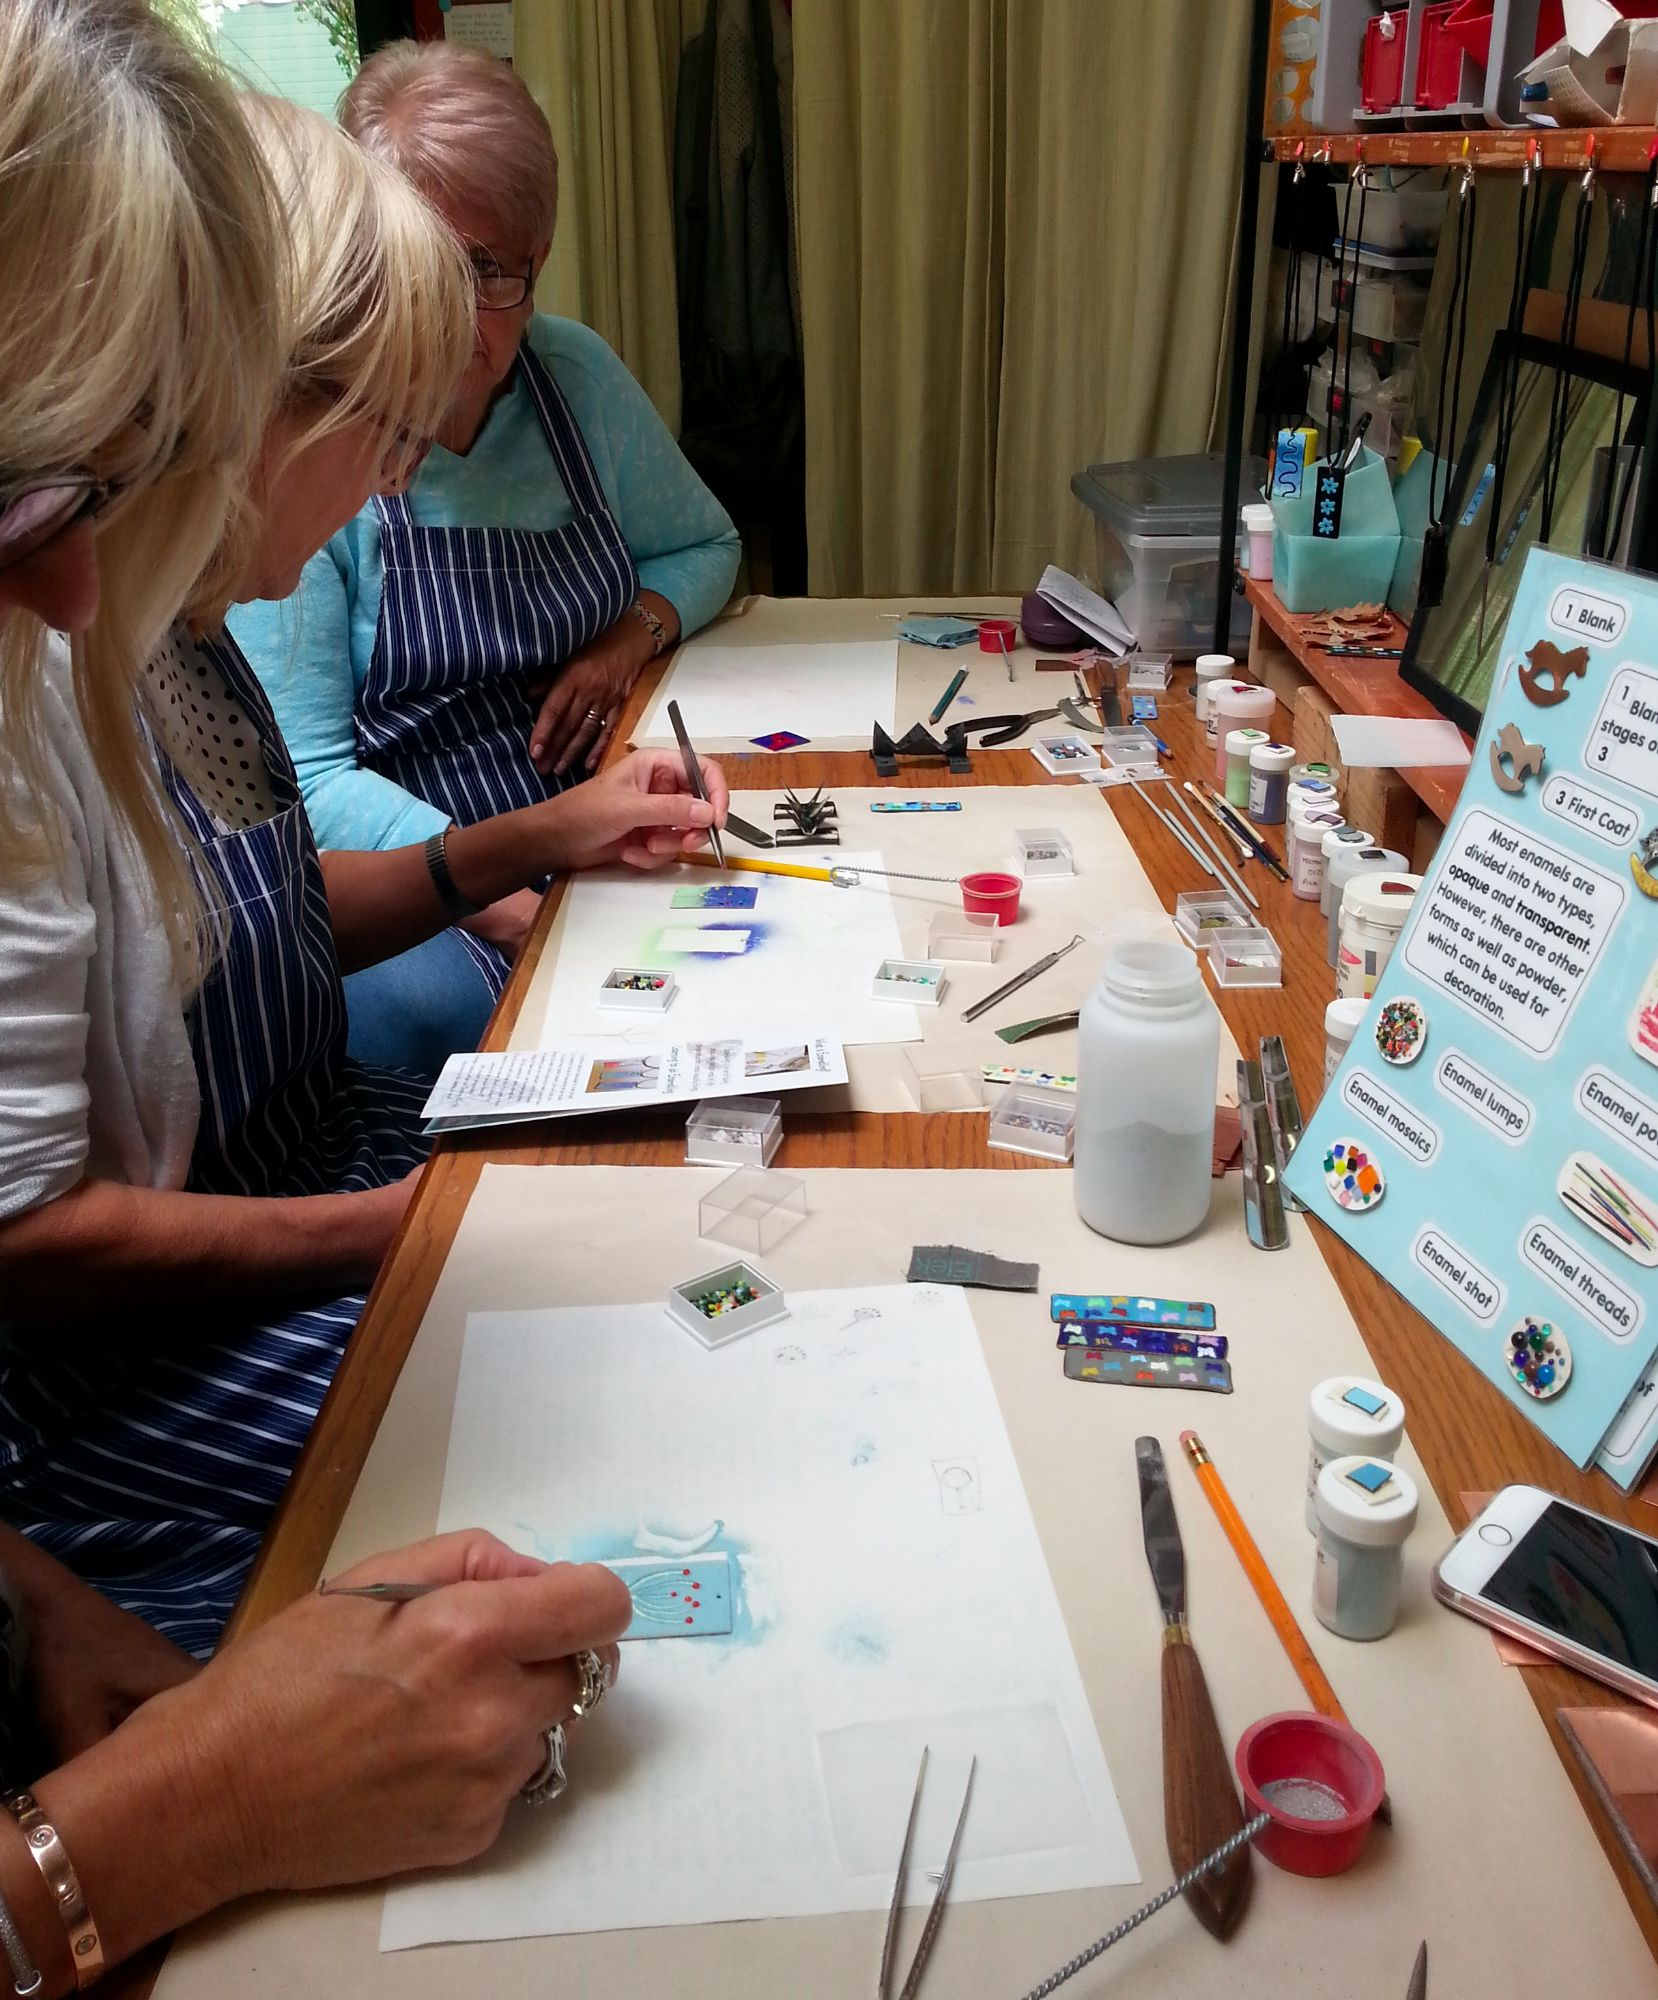 Enamelling Session - Students at Work